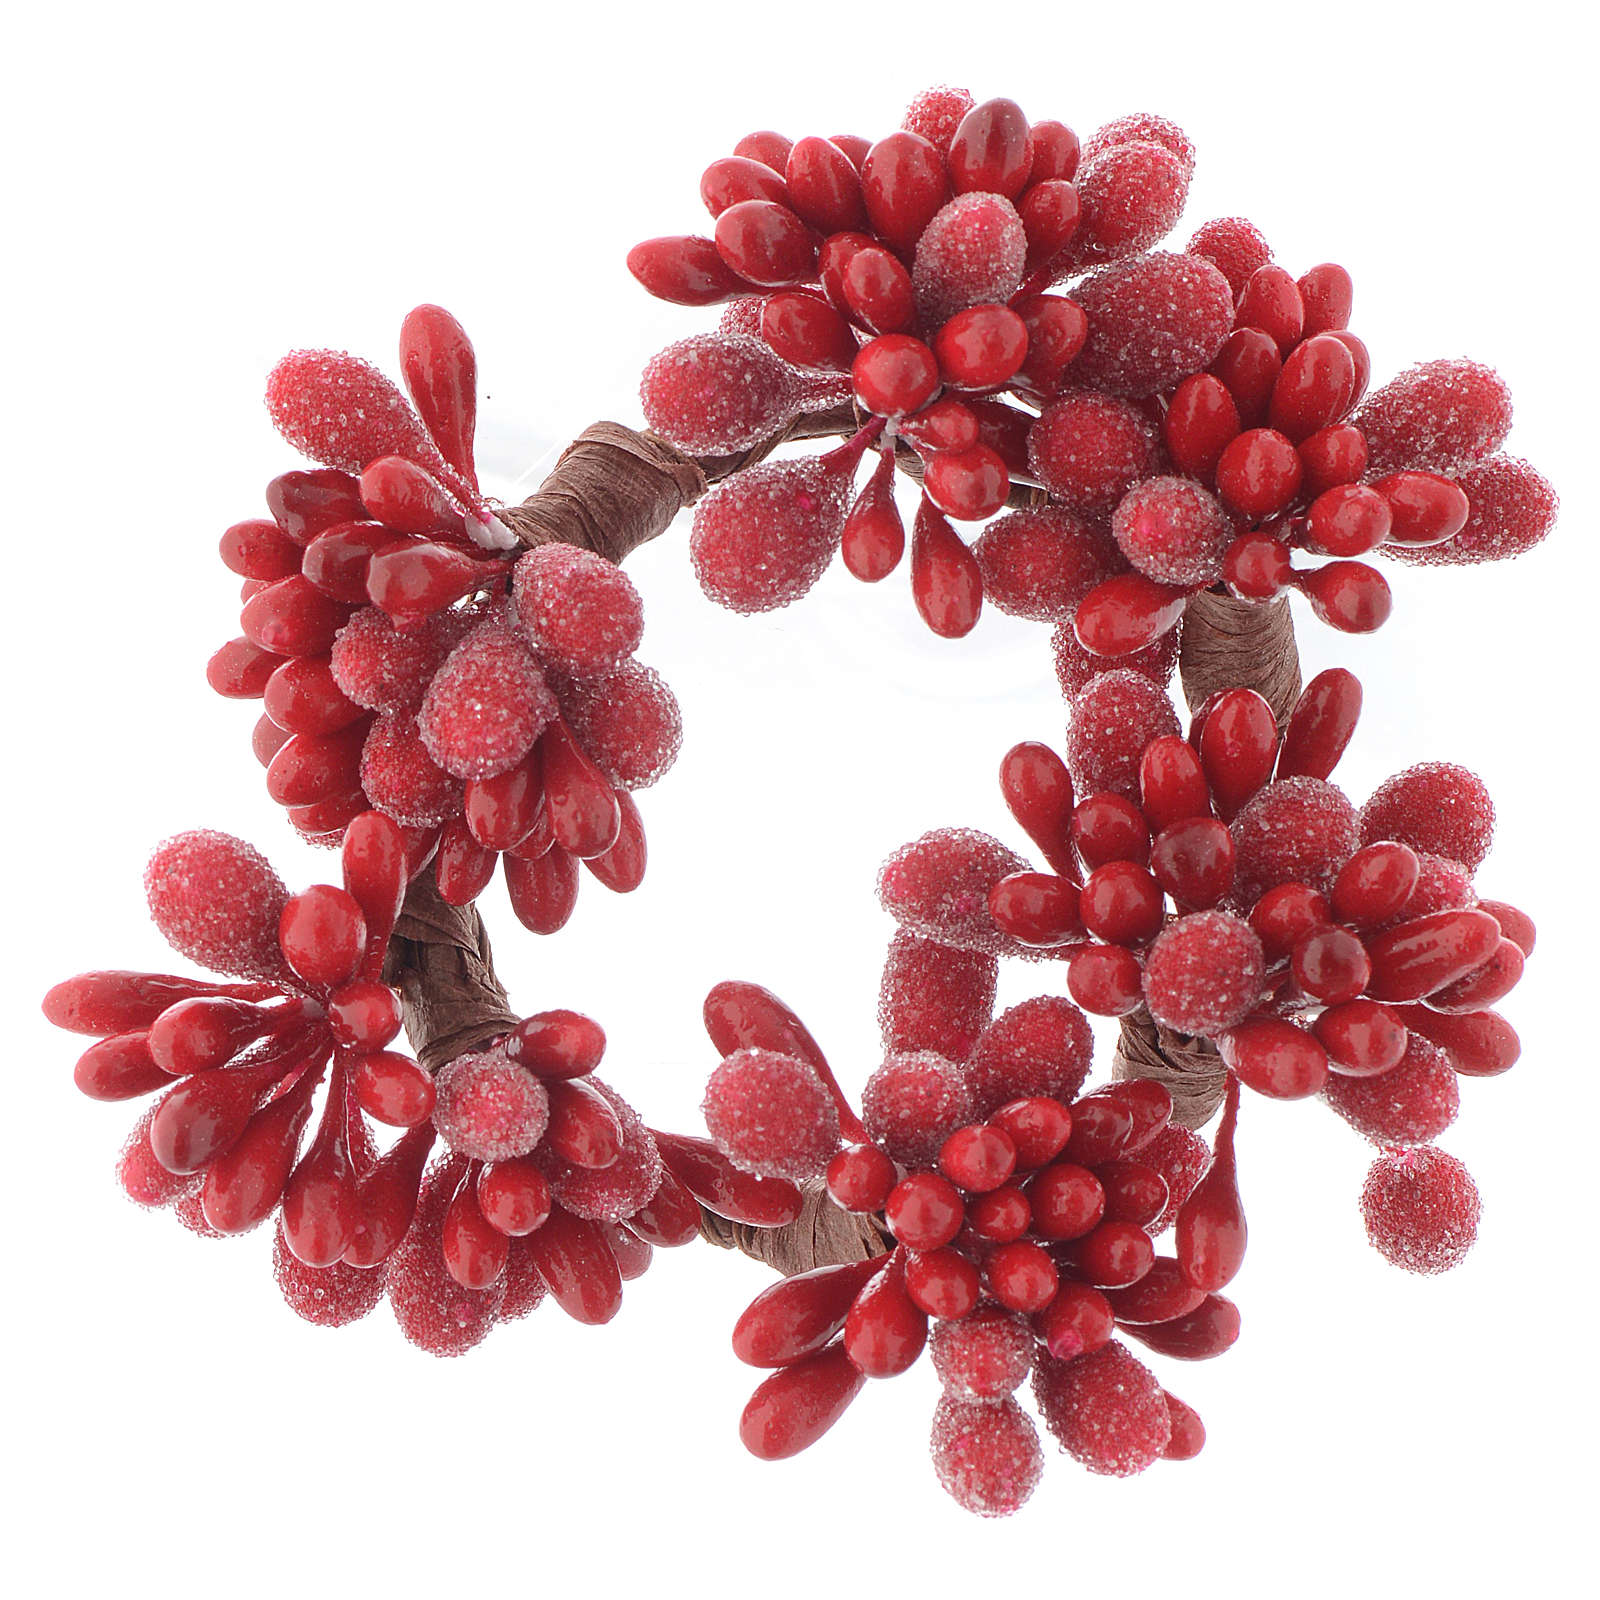 Christmas candle embellishment with berries and pine cones 4cm diameter 3